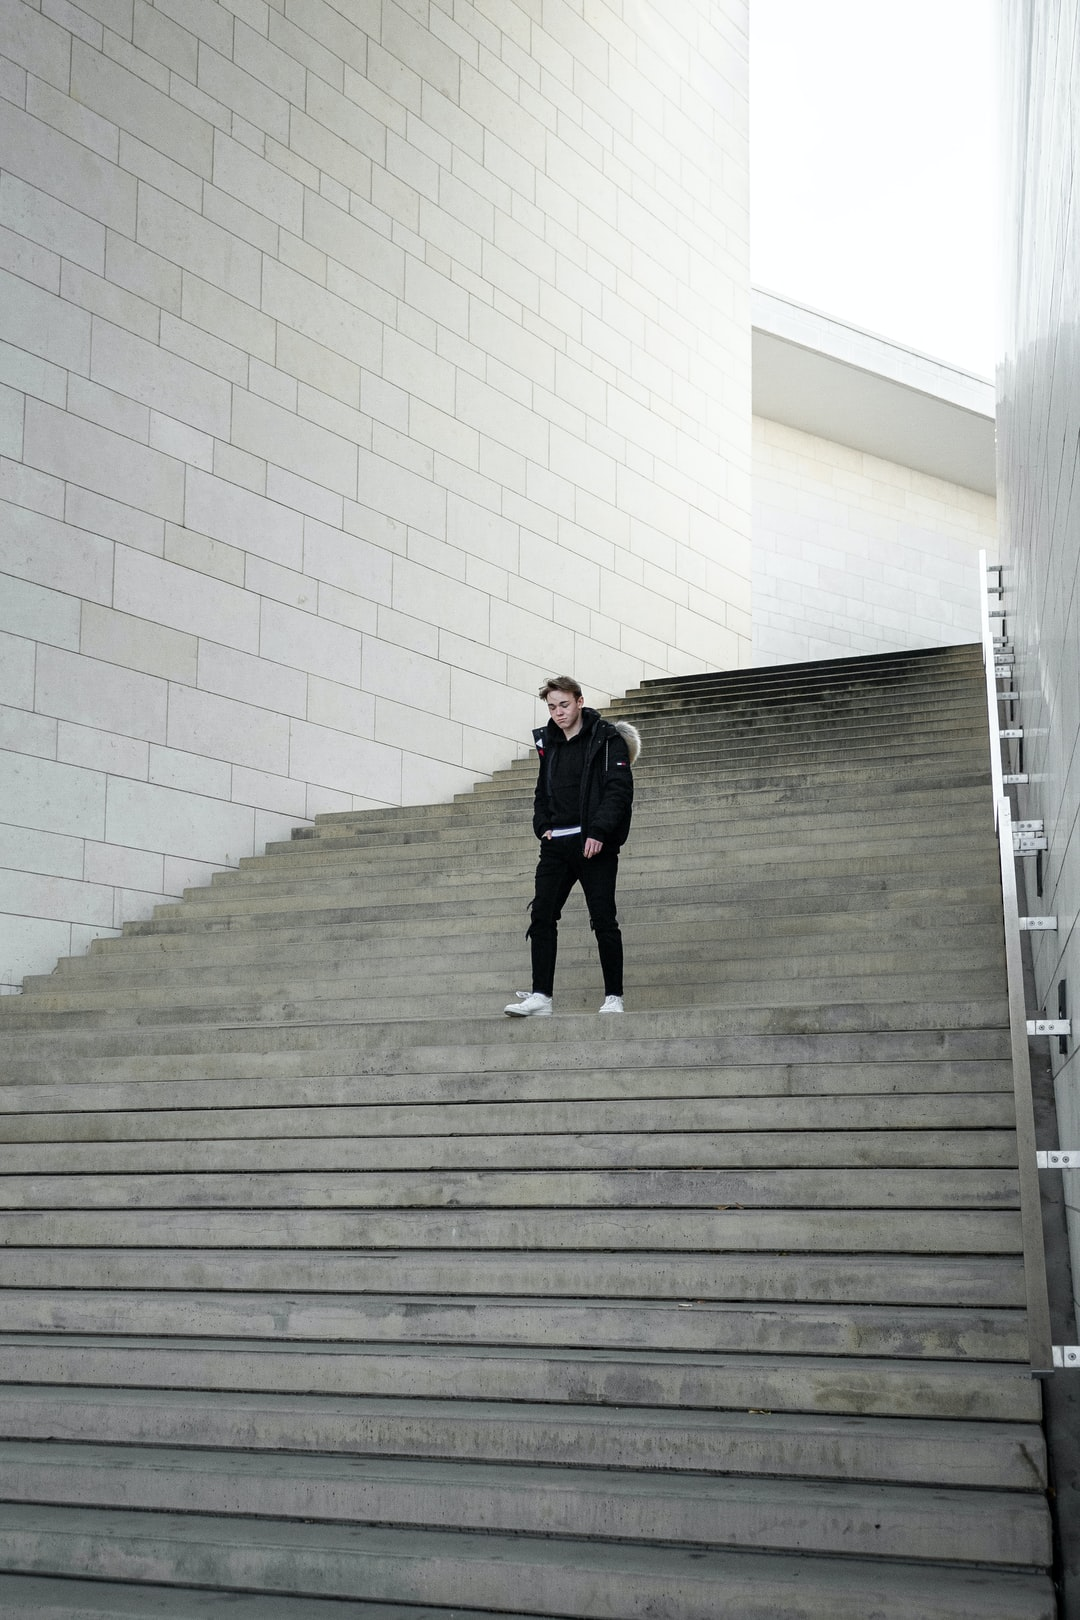 In this photo, Alex is wearing a black Stone Island hoodie together with black denim jeans, white Kenzo sneakers and a Tommy Hilfiger Jacket. This image was taken at Stadtkrone-Ost in Dortmund, Germany.